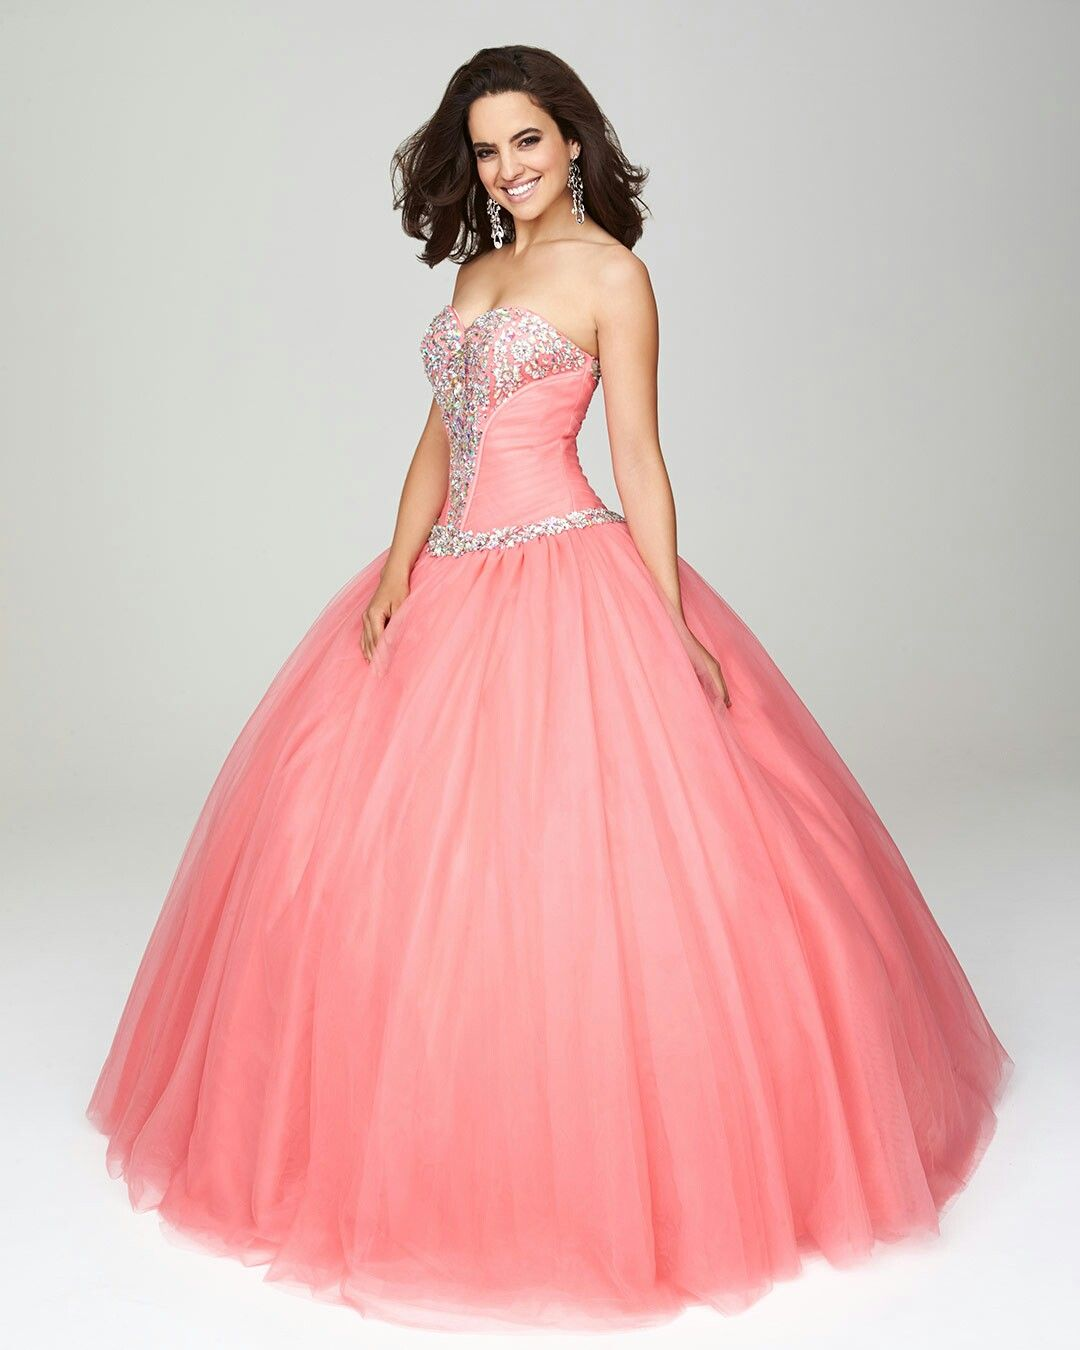 Color salmón | Salmon Color Dresses For Quinceaneras | Pinterest ...